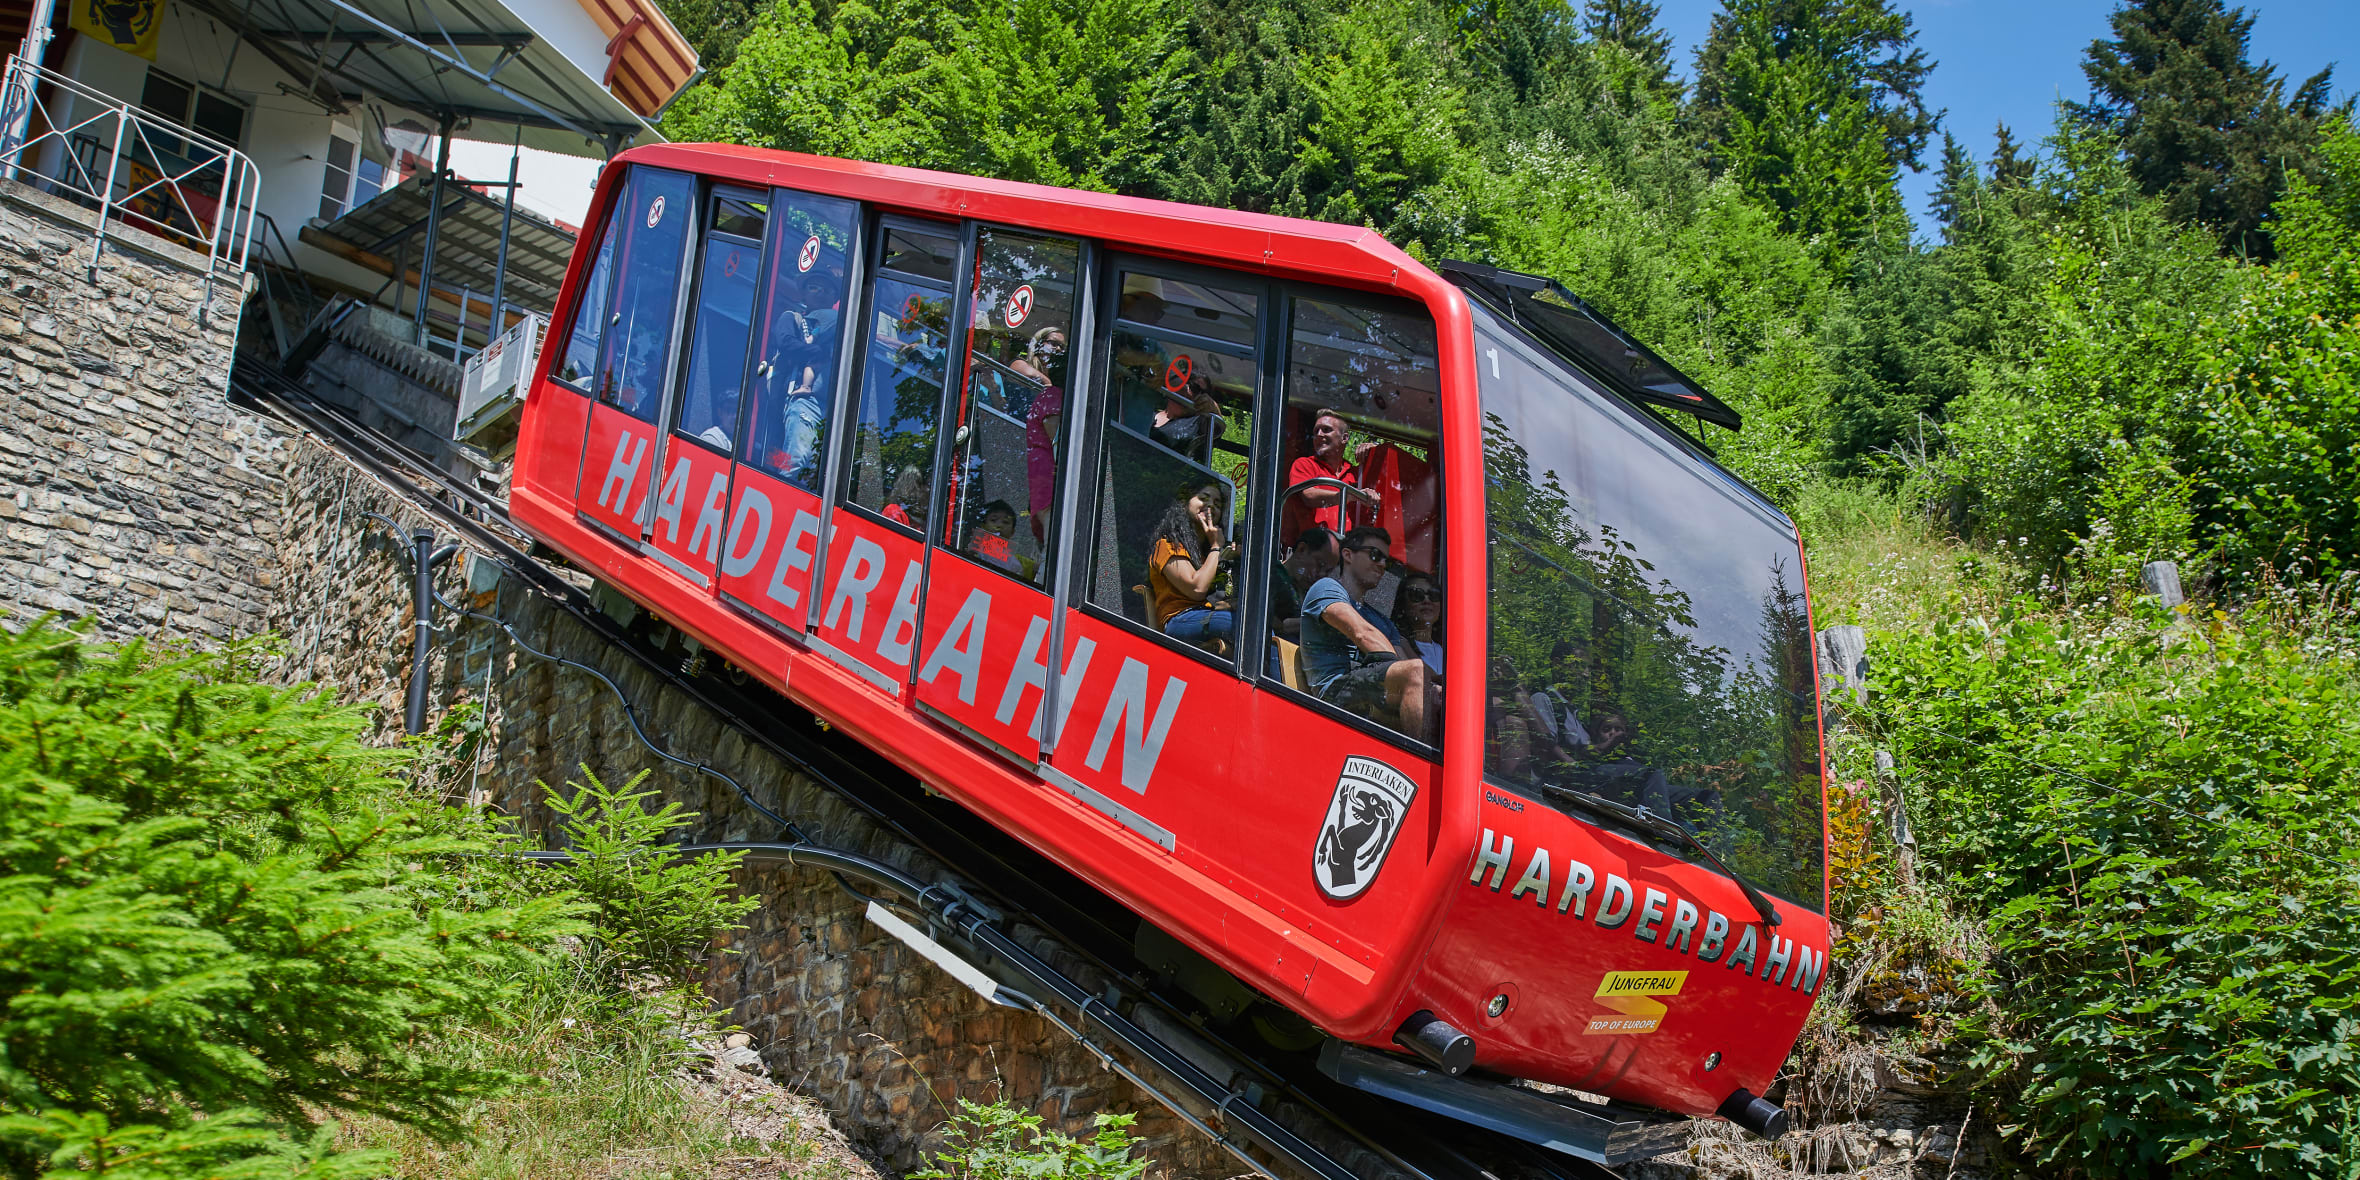 [Translate to English:] Harderbahn